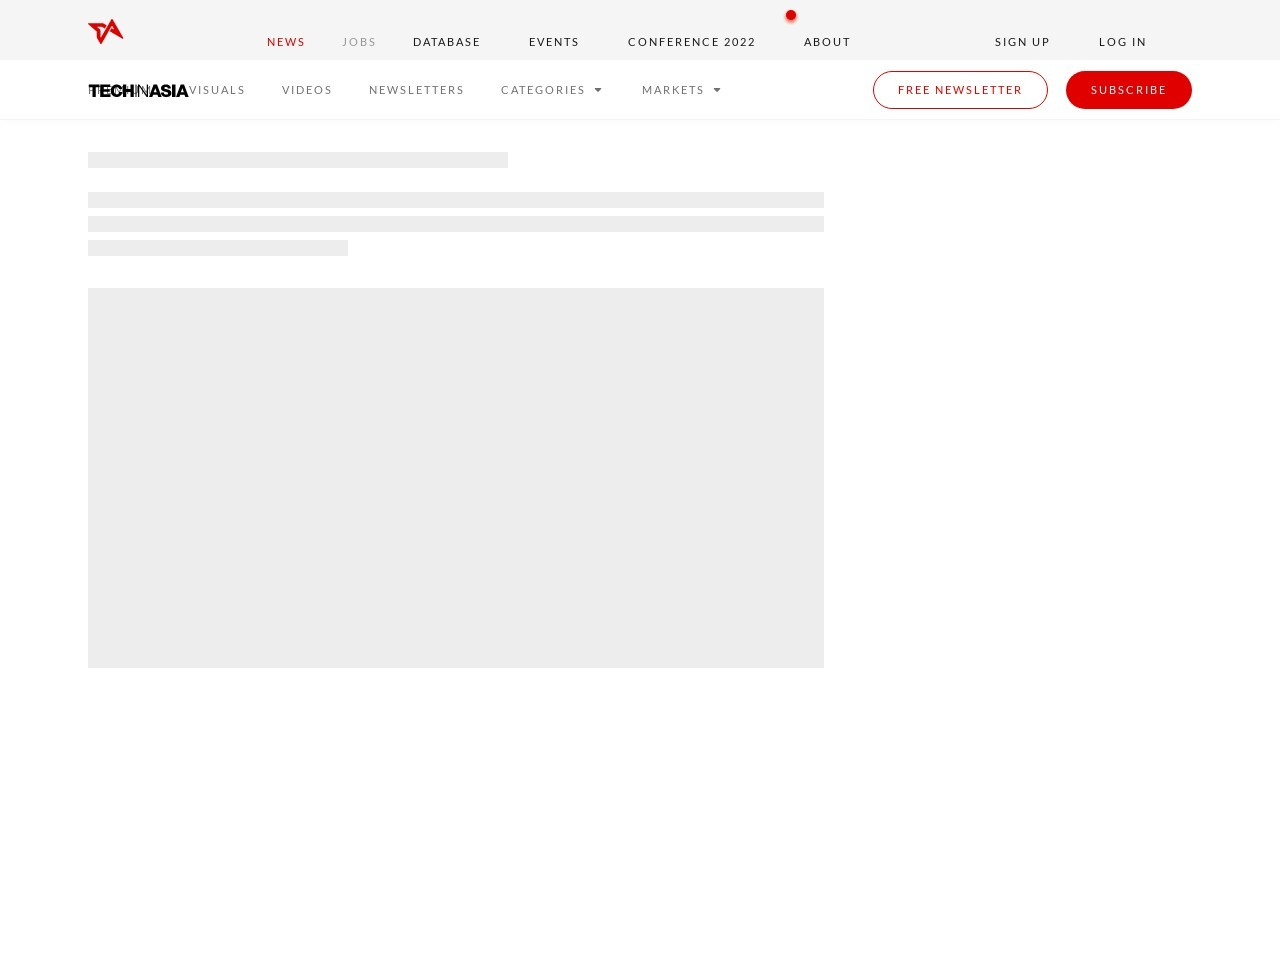 Learning How To Use Social Media for Business in Singapore